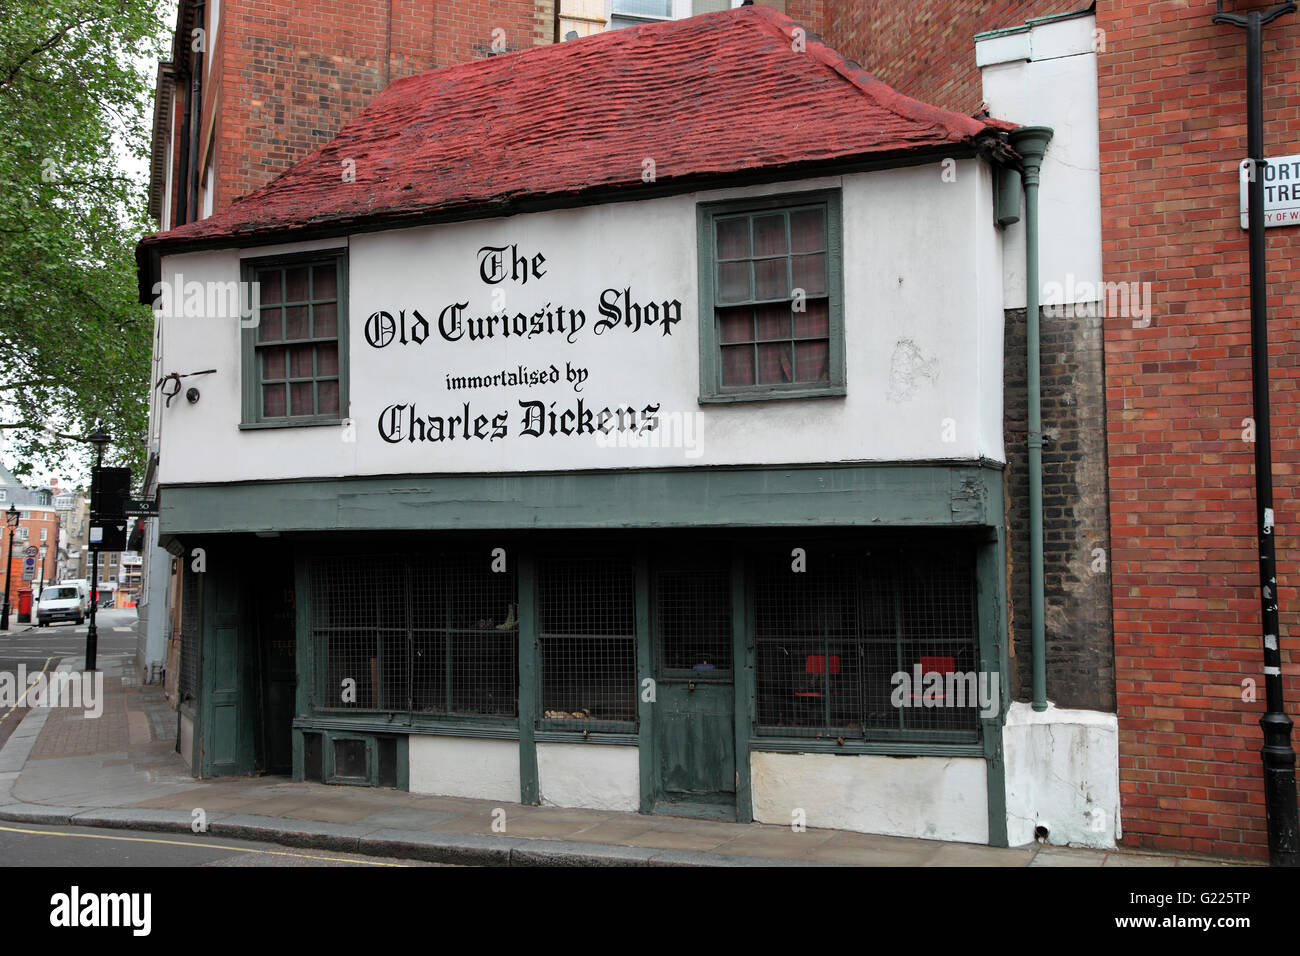 The Old Curiousity Shop immortalised by Charles Dickens, London - Stock Image